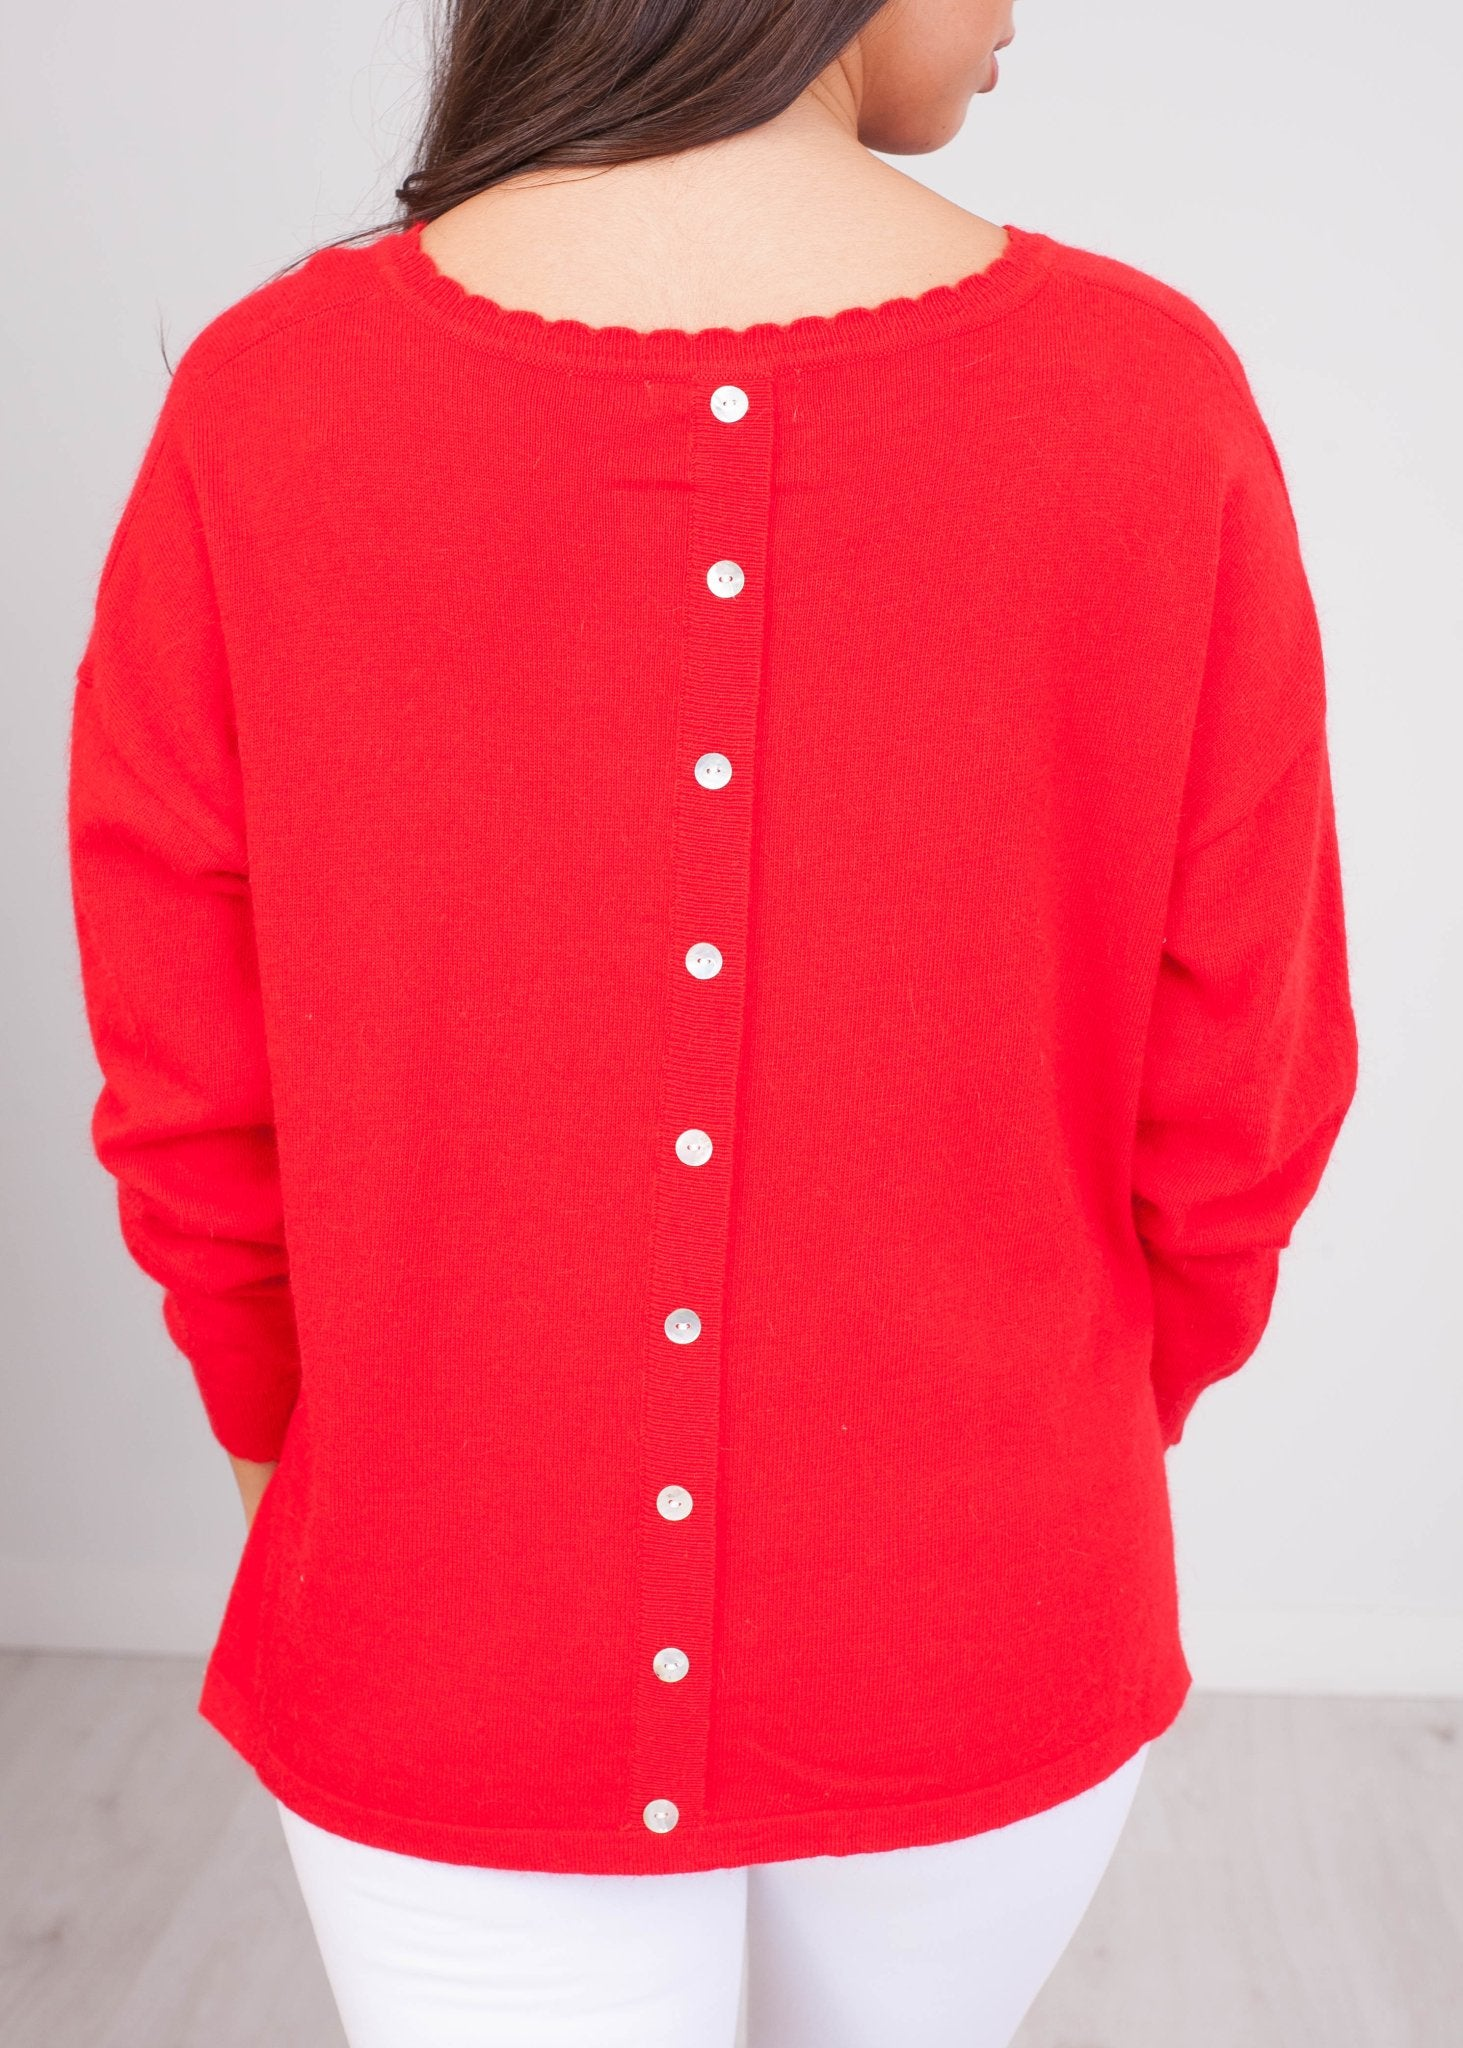 Cherie Red Fine Knit Top - The Walk in Wardrobe